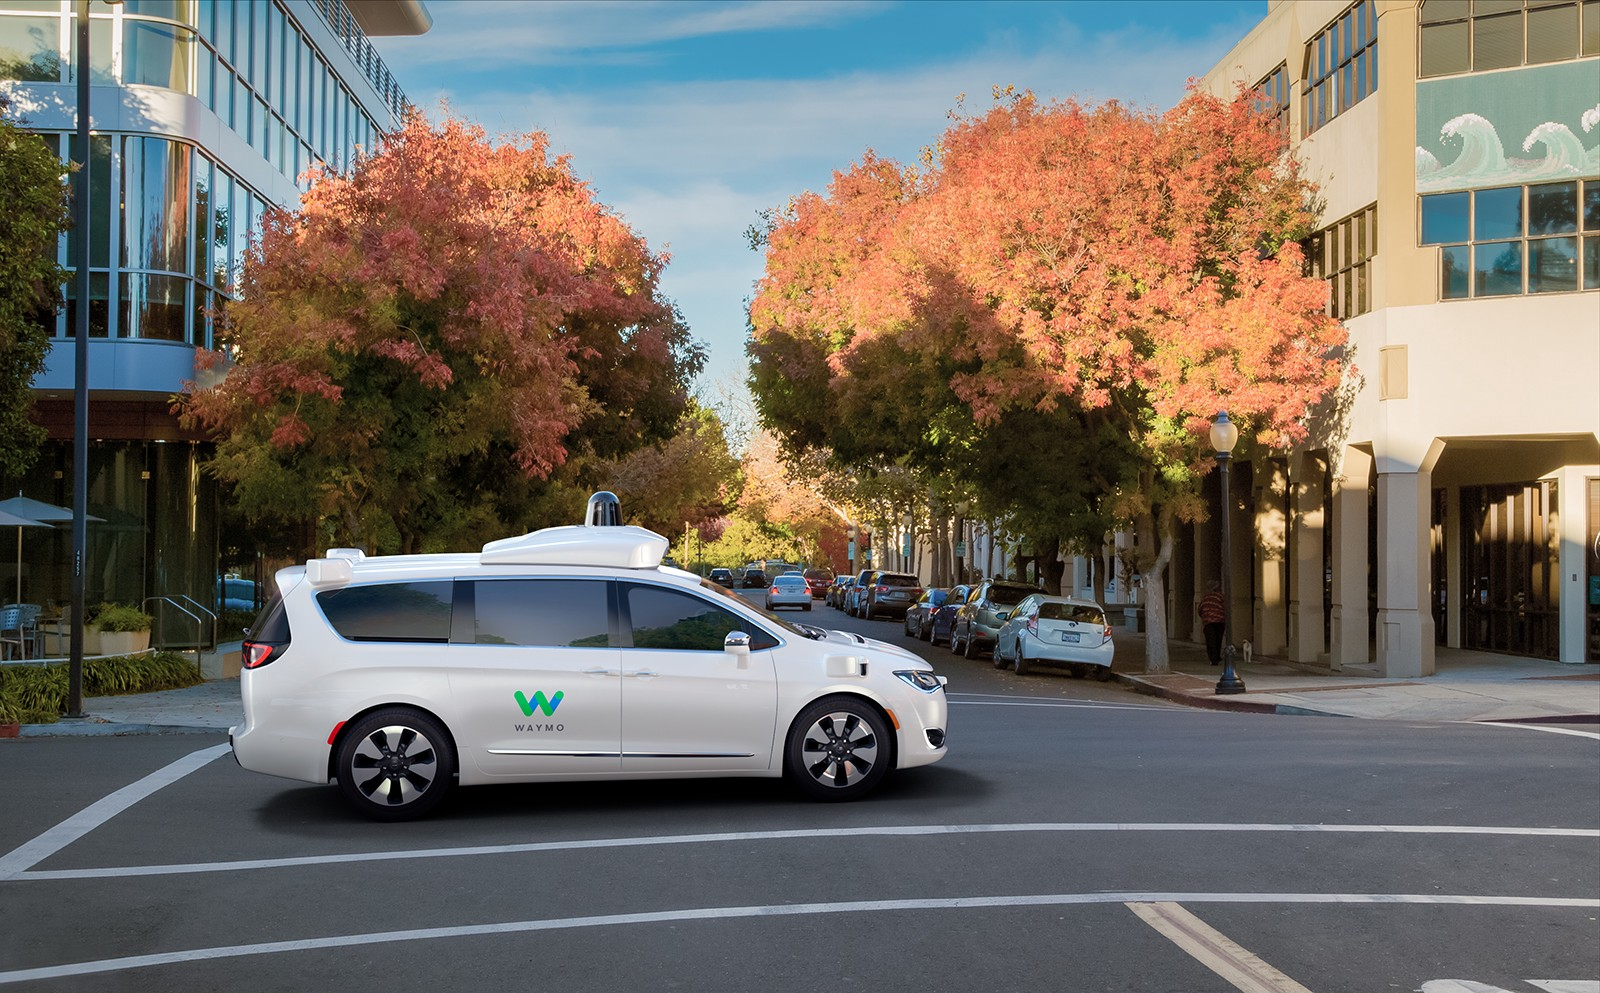 Google's Waymo Sues Uber For Stealing Trade Secrets About Self-Driving Cars